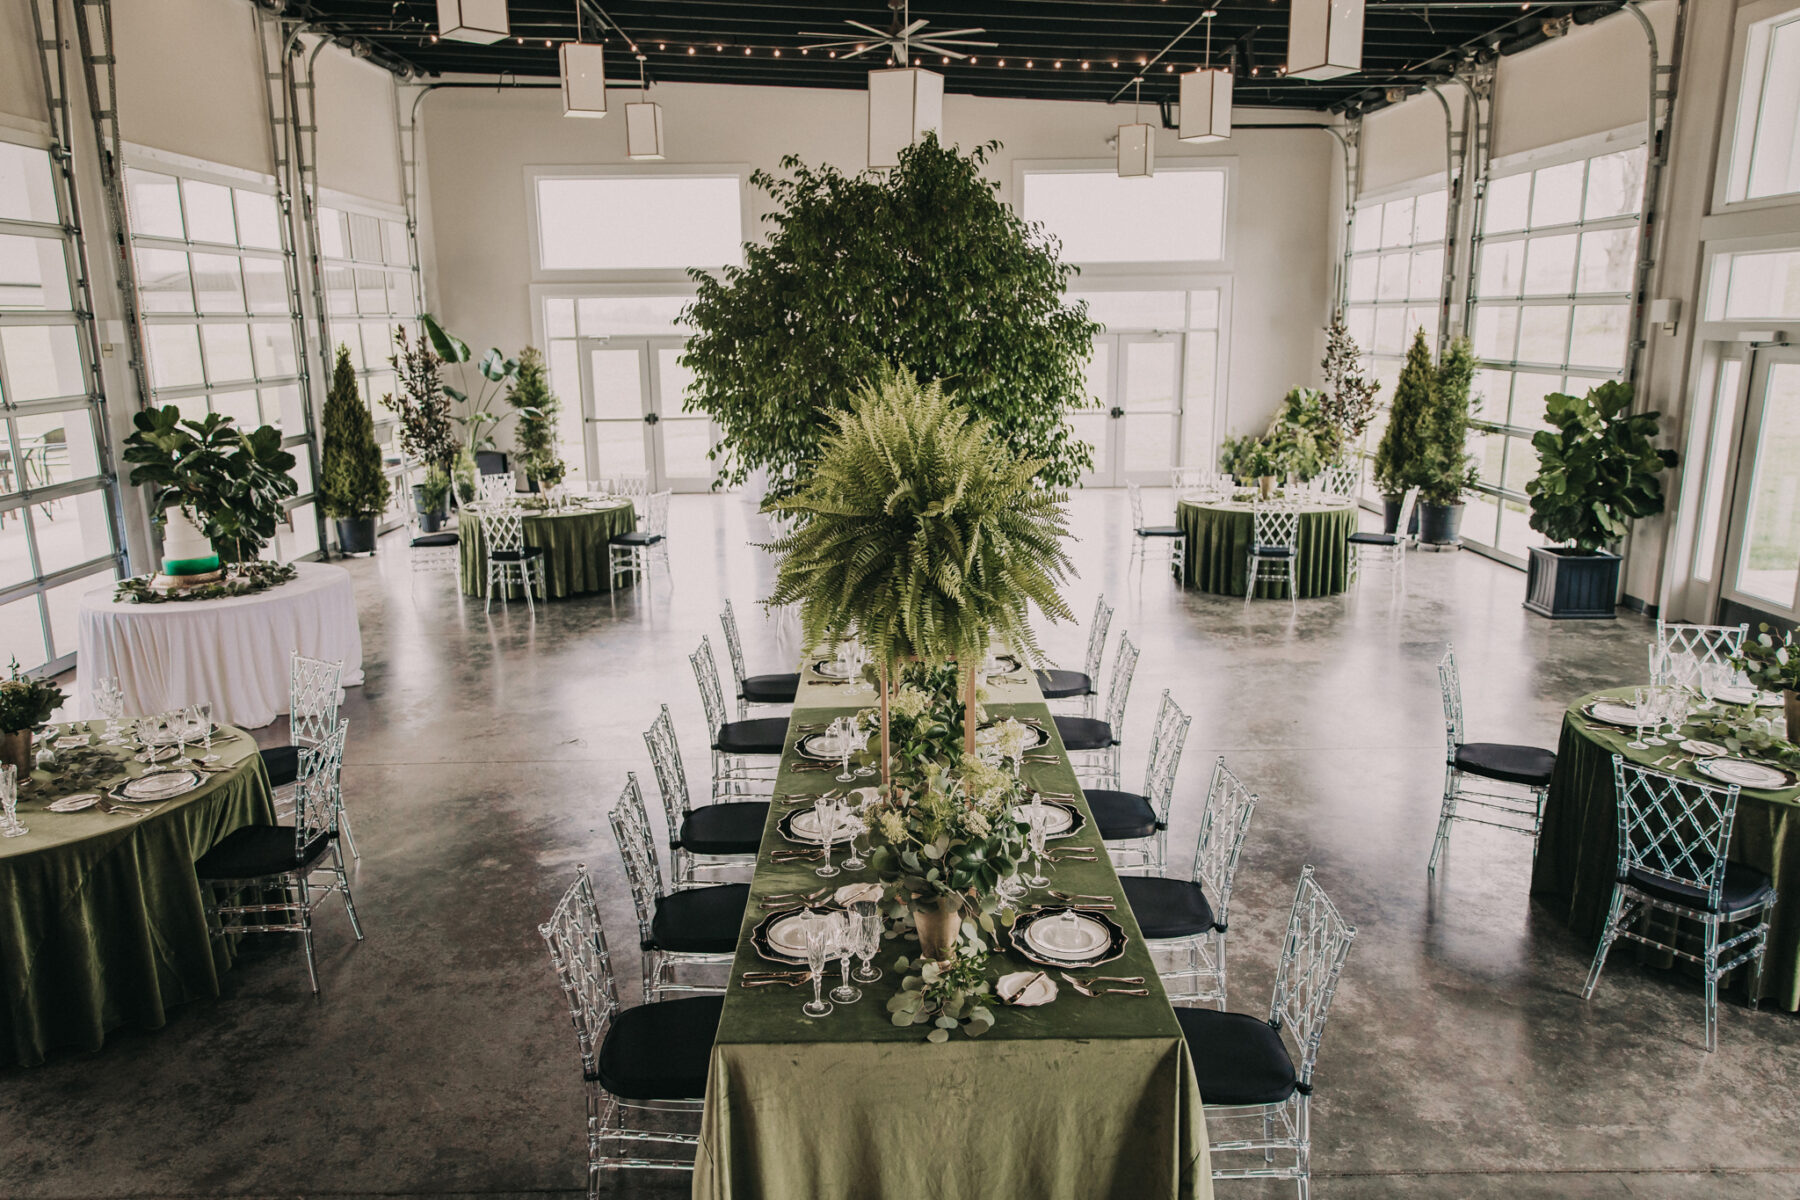 Ruby Cora Wedding Venue: Shades of Green Legacy Styled Shoot by Music City Events and Billie-Shaye Style featured on Nashville Bride Guide